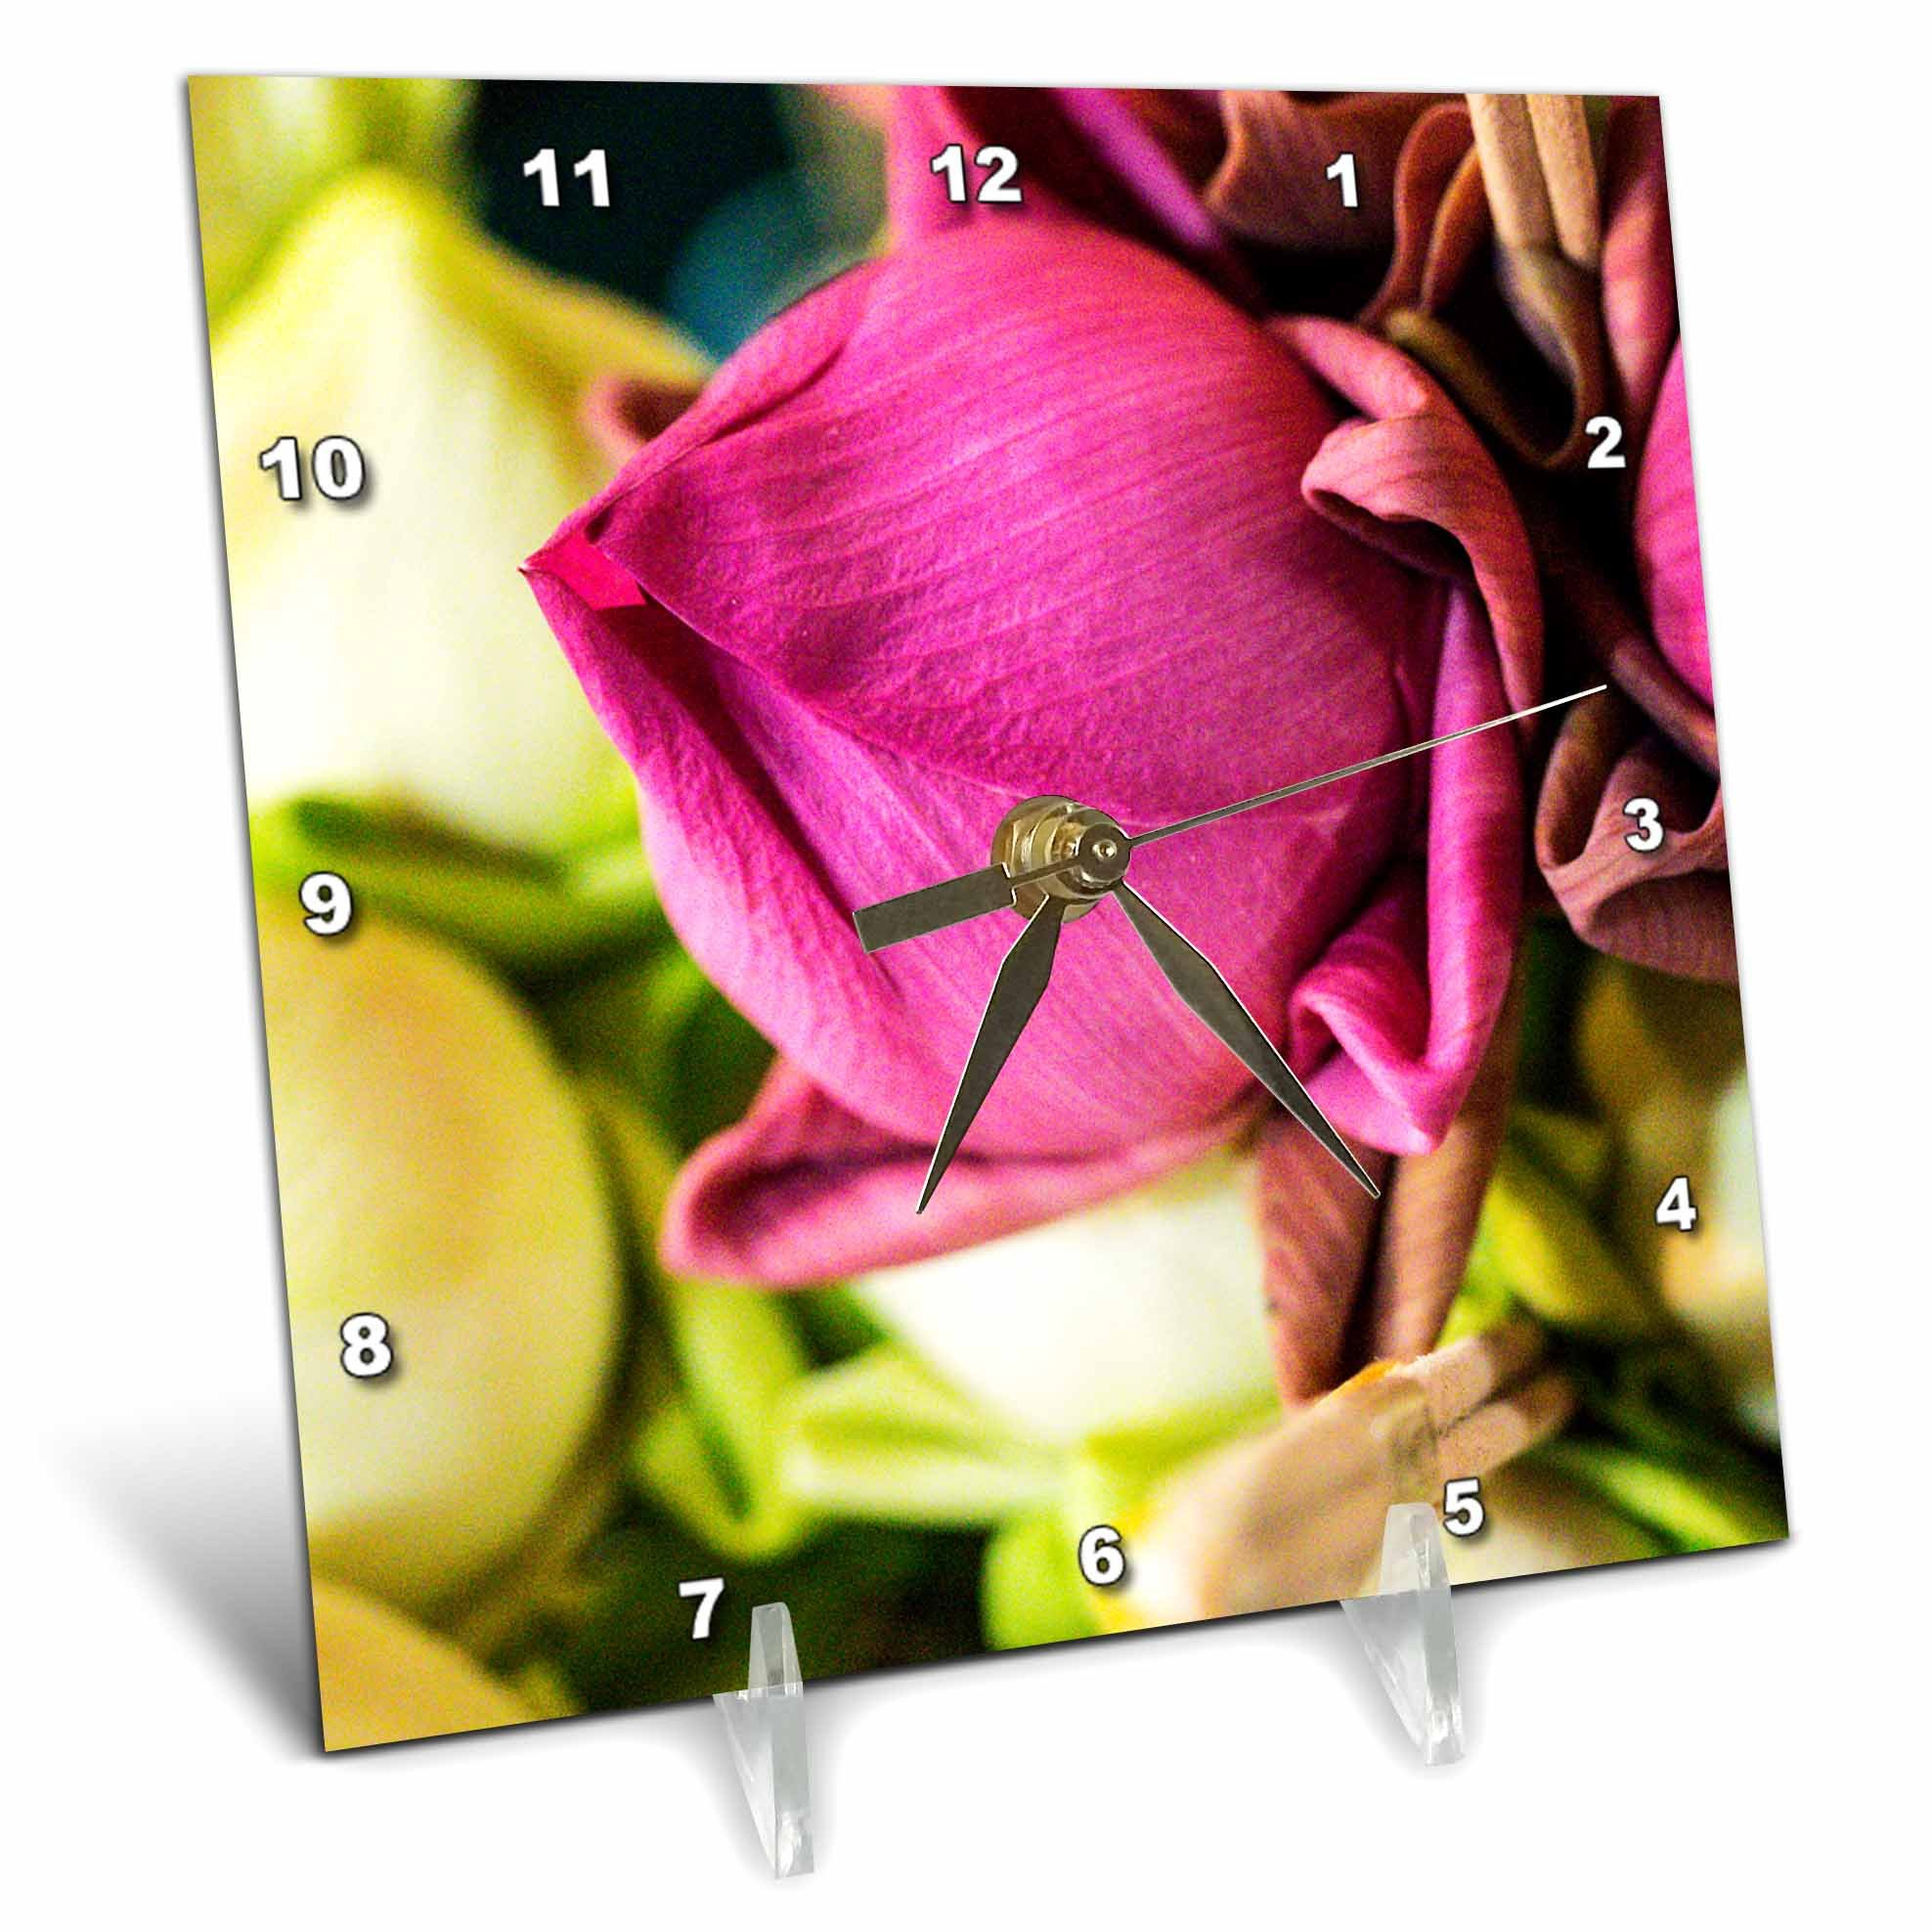 3dRose Danita Delimont - Flowers - Thailand, Chiang Mai, Flowers at the Thai Market Place - 6x6 Desk Clock (dc_276974_1) by 3dRose